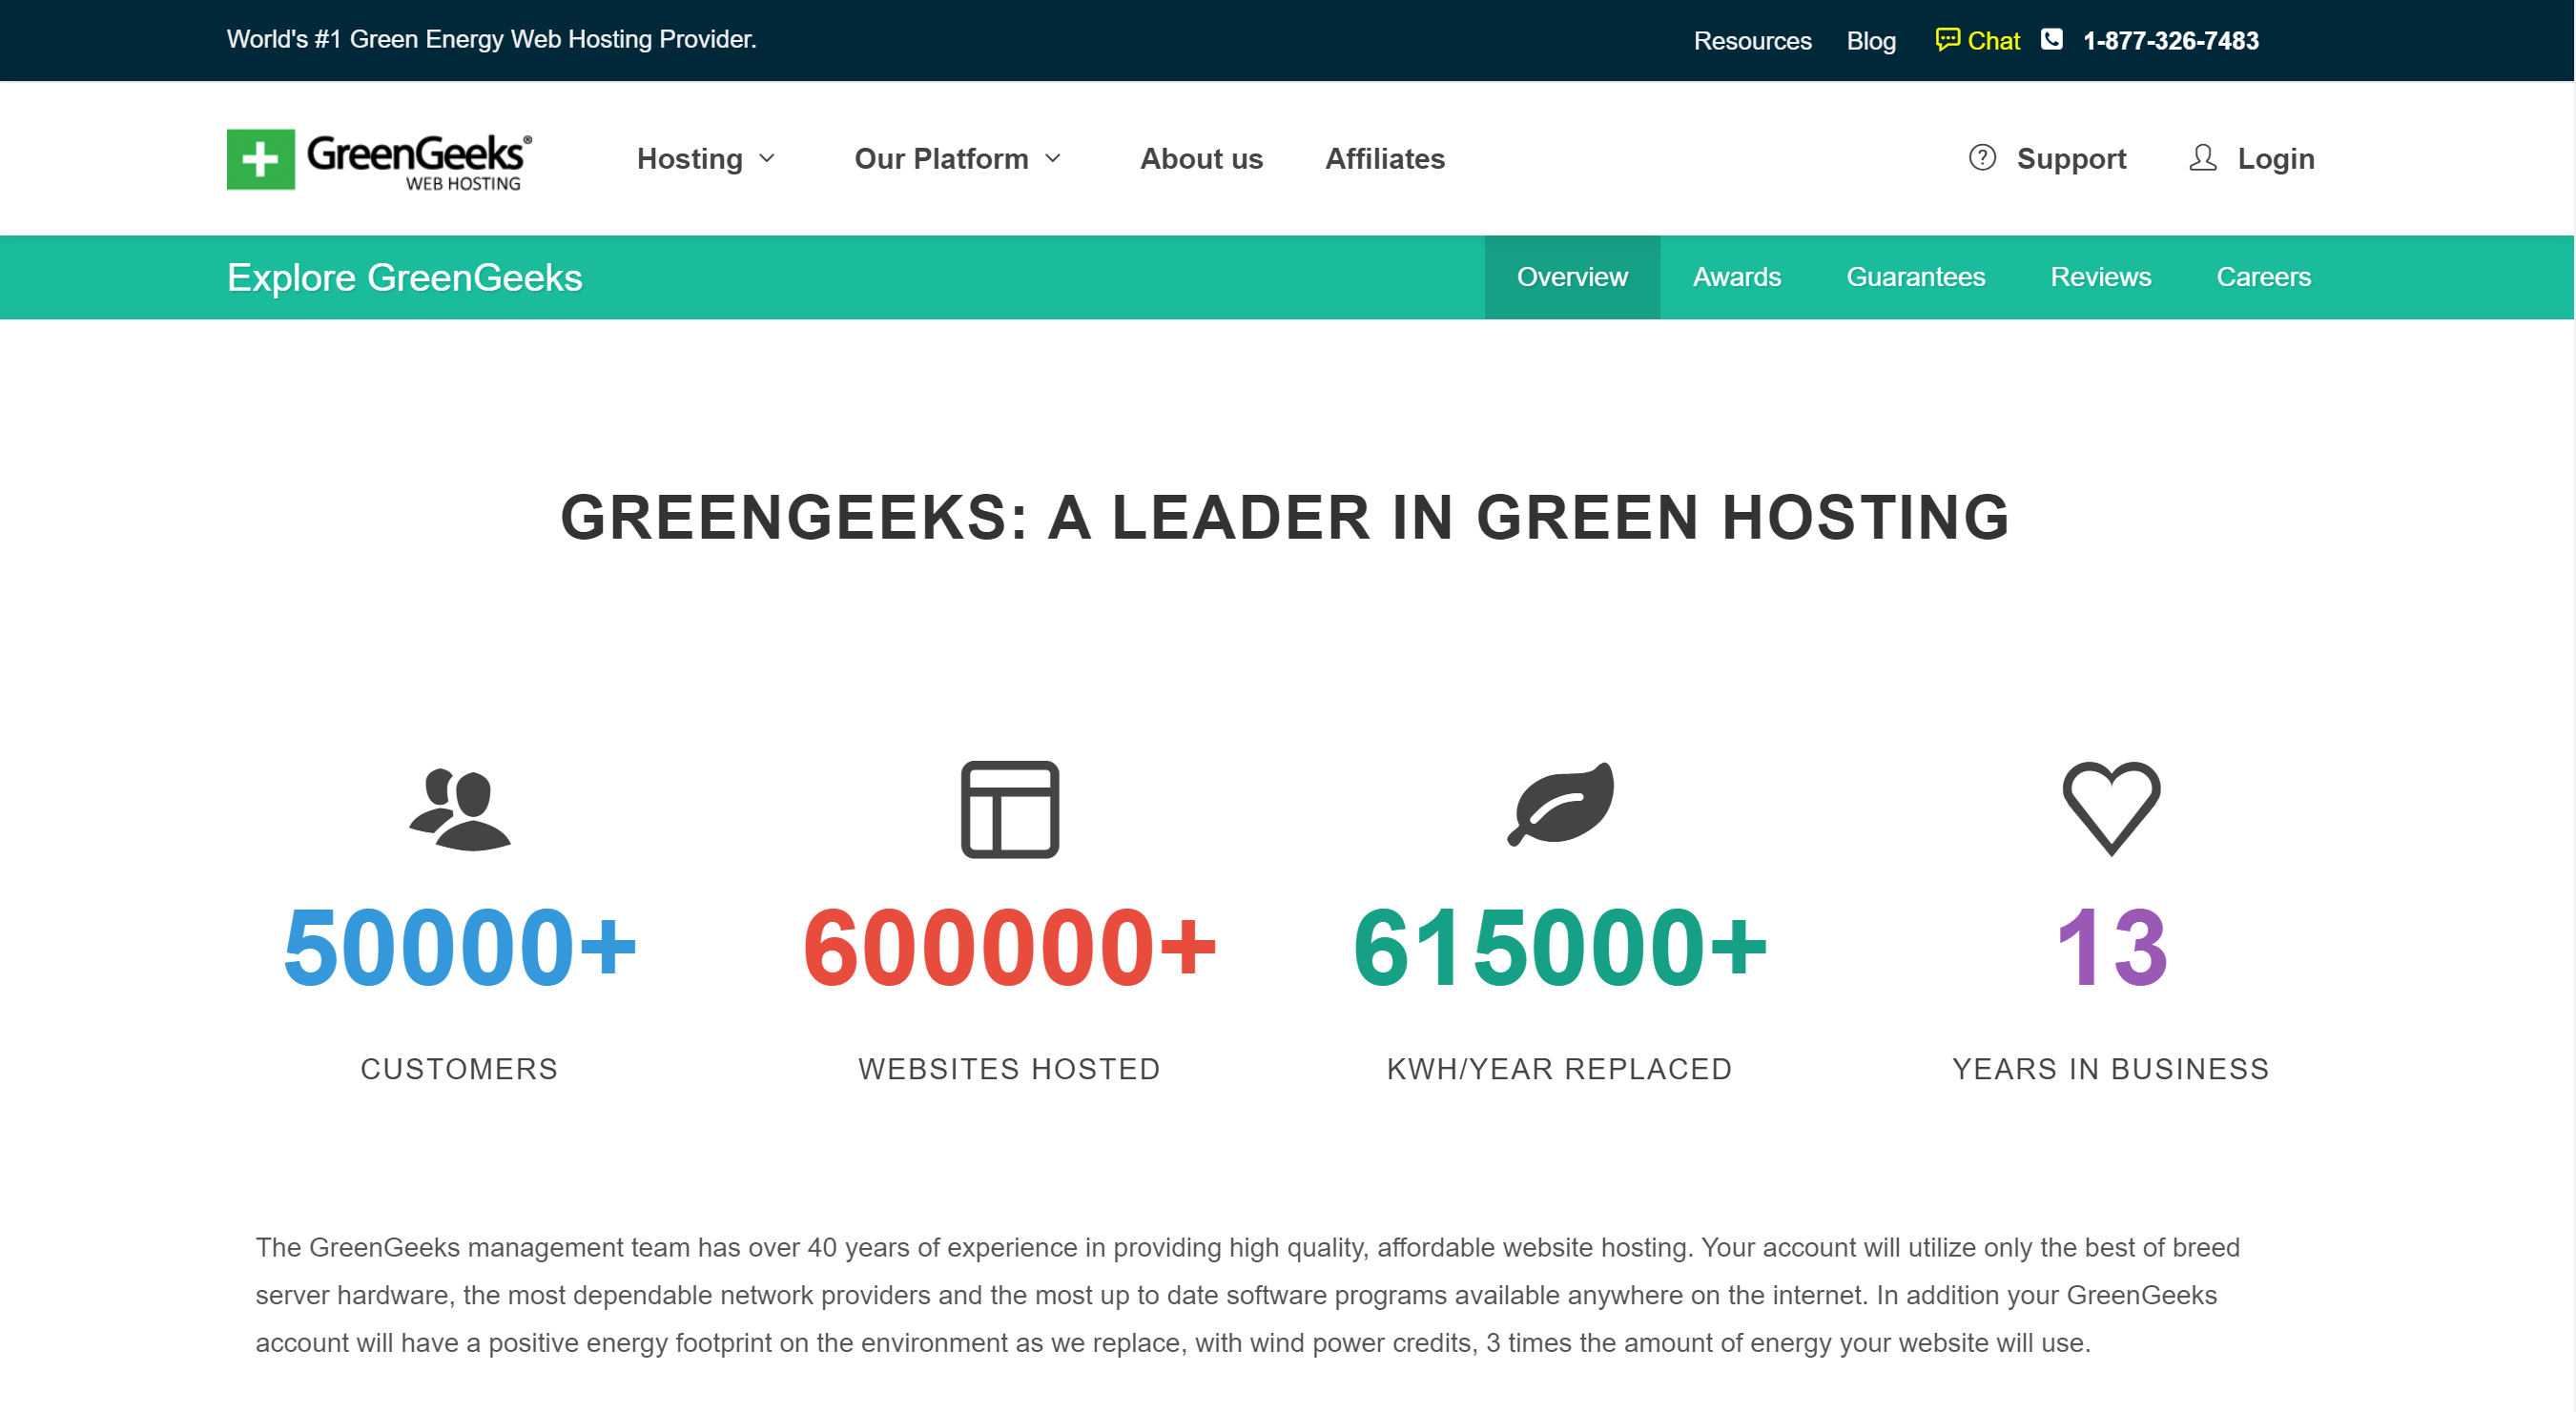 GreenGeeks Statistics - Over 600,000 websites hosted, 615,000 kwh/year replaced, and 13 years in business